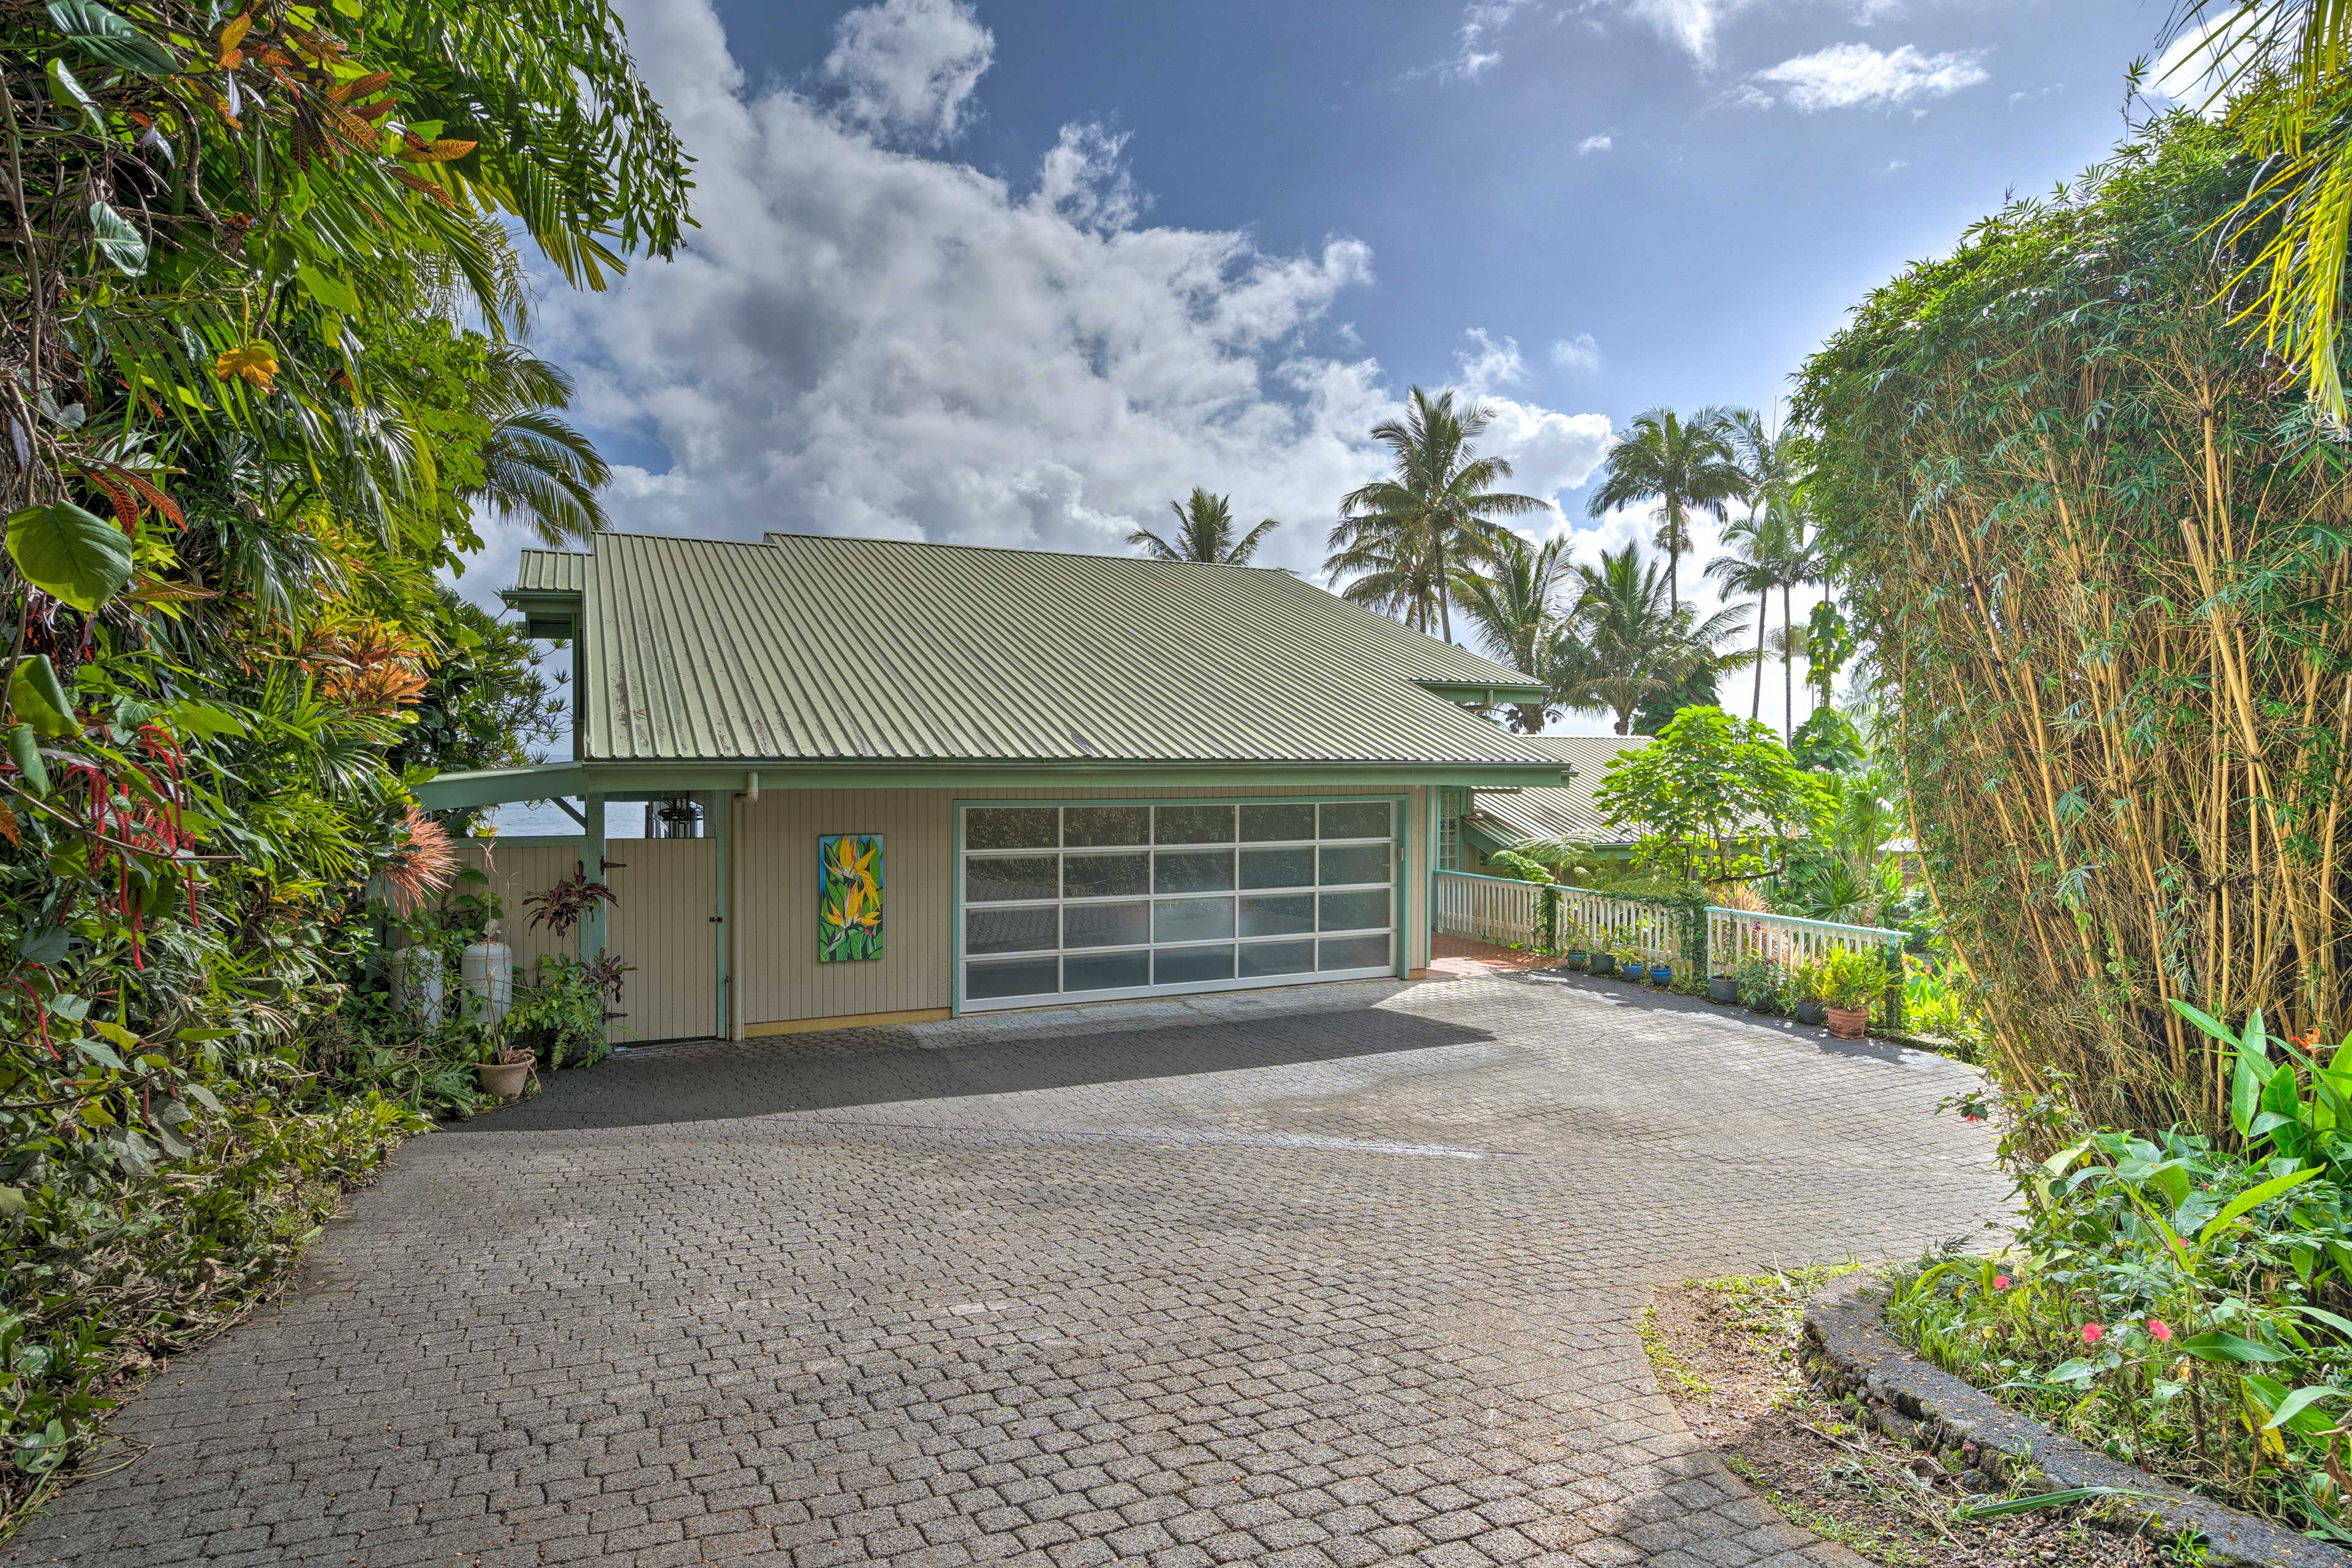 This home boasts 2,300 square feet, 2 bedrooms, 2 bathrooms, and room for 5.